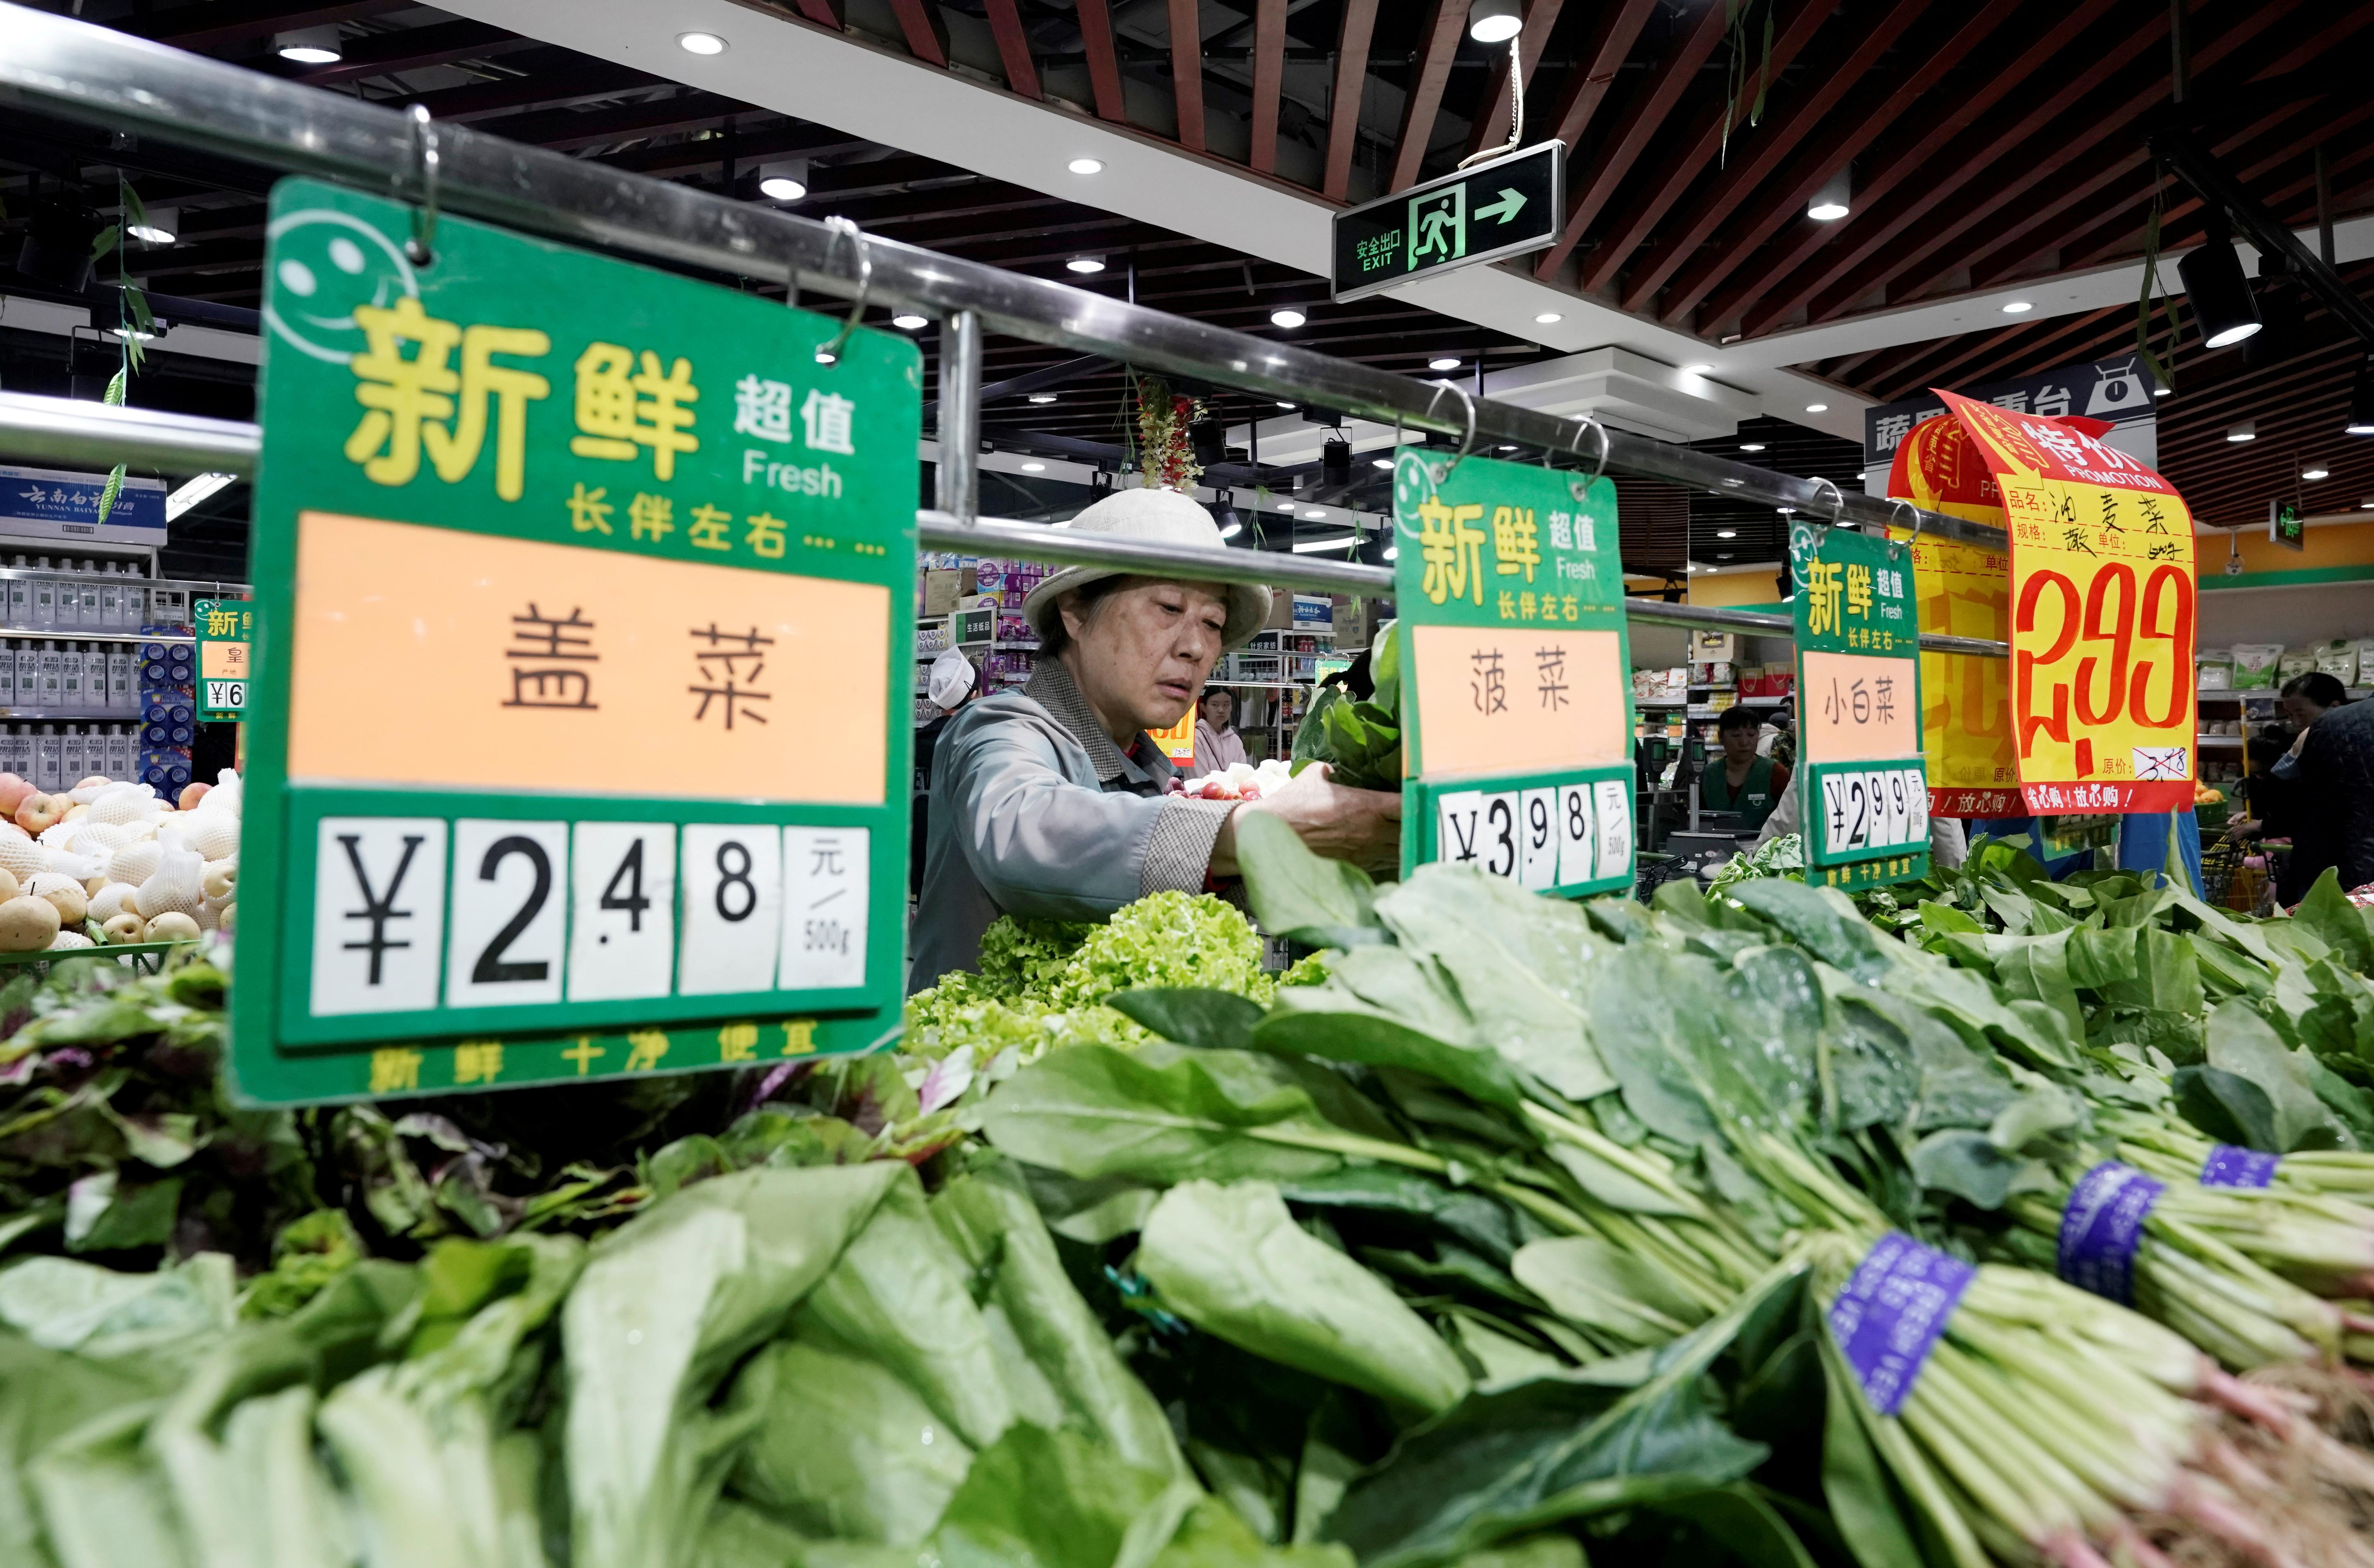 To spur consumption, China preps plan to boost disposable income by...